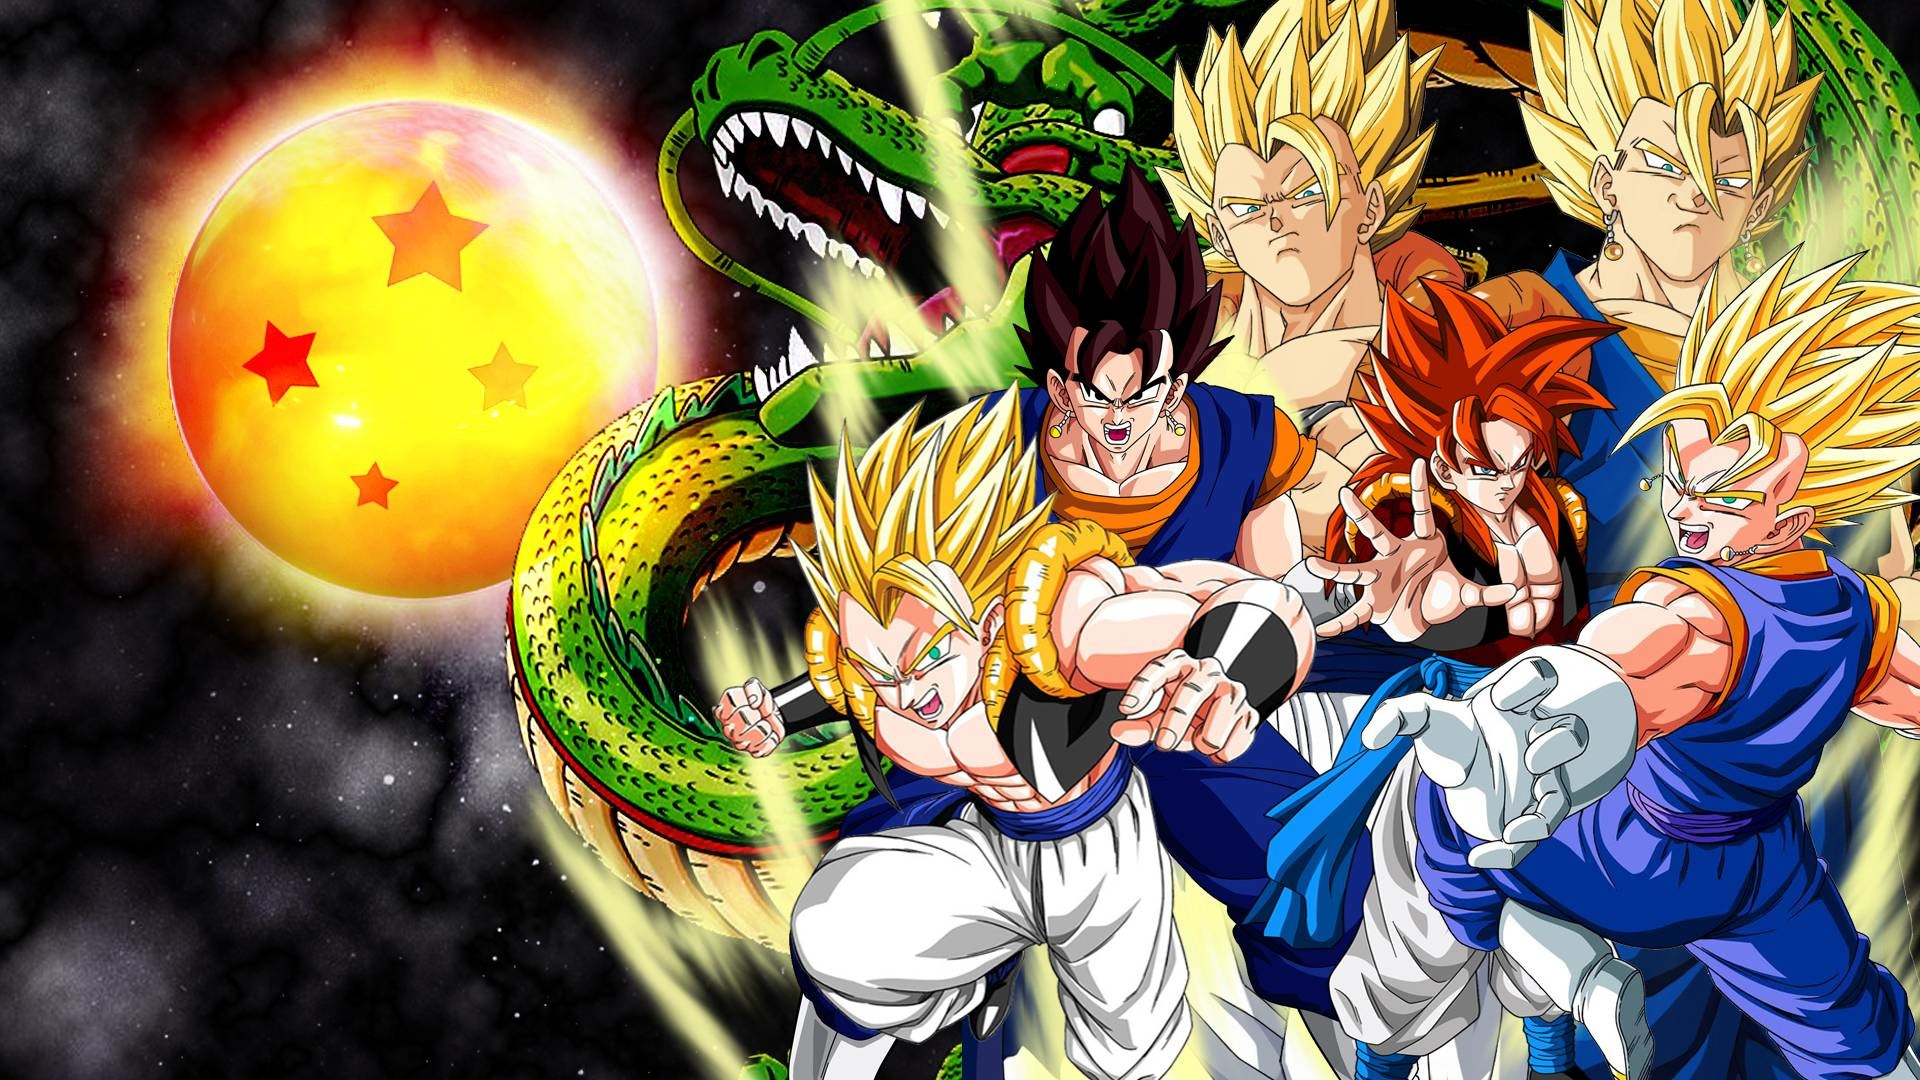 Dragonballz Wallpaper Wallpapertag